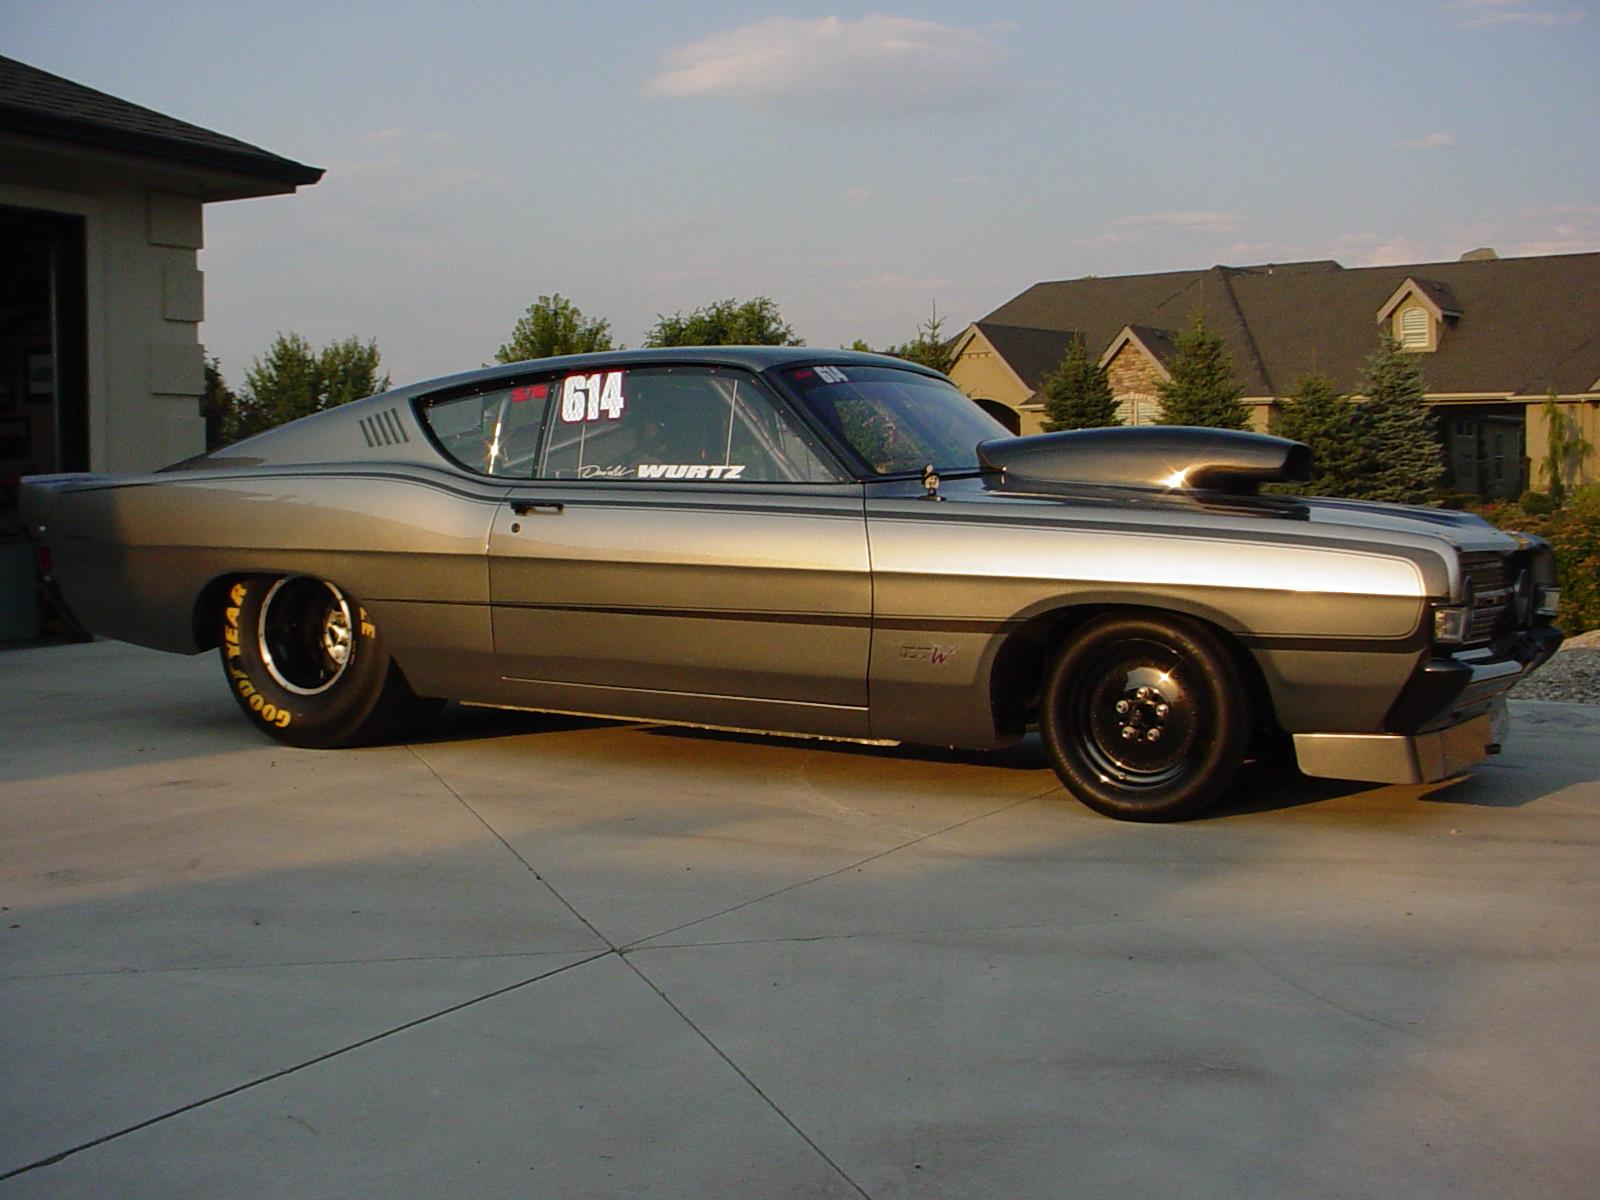 Street Outlaws Wallpaper for Pinterest 1600x1200